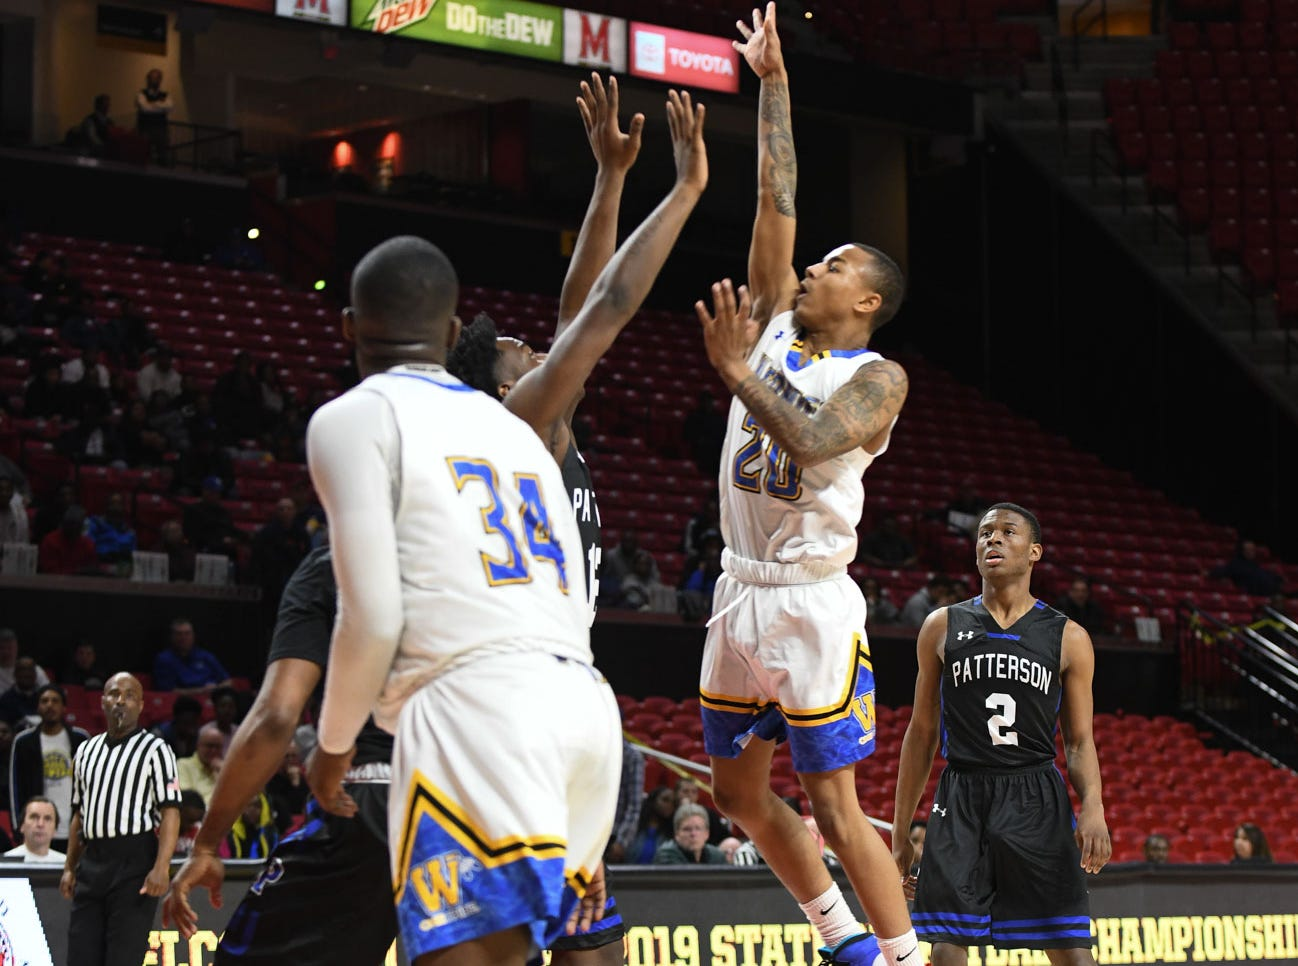 Wi-Hi's Dorian Stevens with the jumper against Patterson High School during the MPSSA 2A boys state championship on Saturday, March 16, 2019 at The Xfinity Center in College Park, Md.